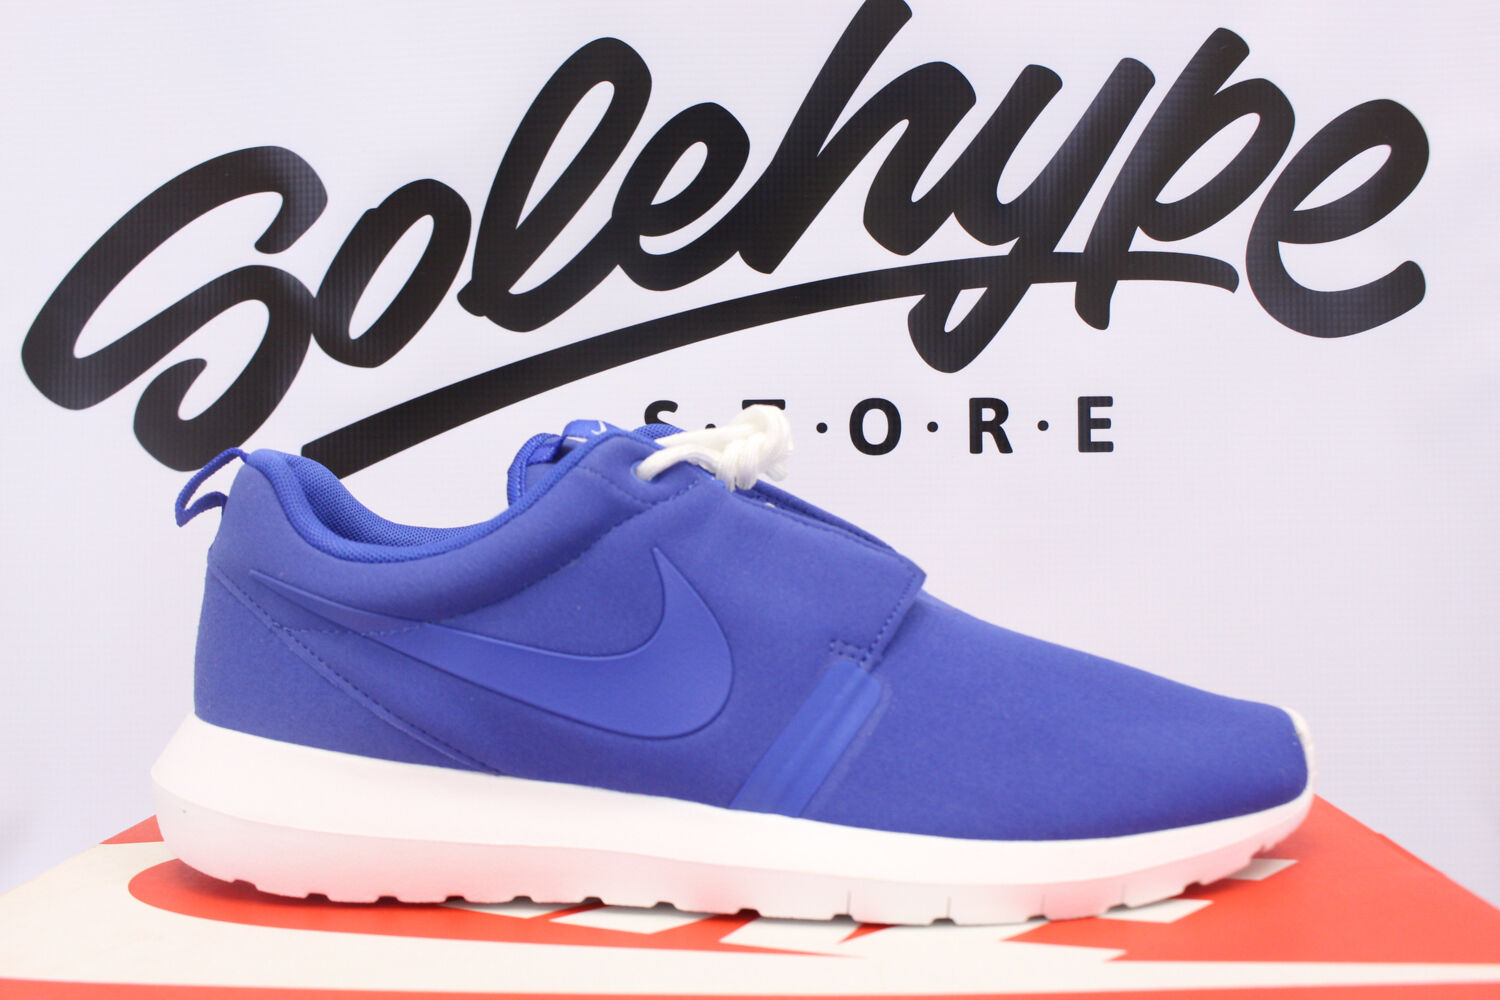 NIKE ROSHERUN NM NATURAL MOTION ROYAL blueE WHITE ROSHE 631749 441 SZ 11.5